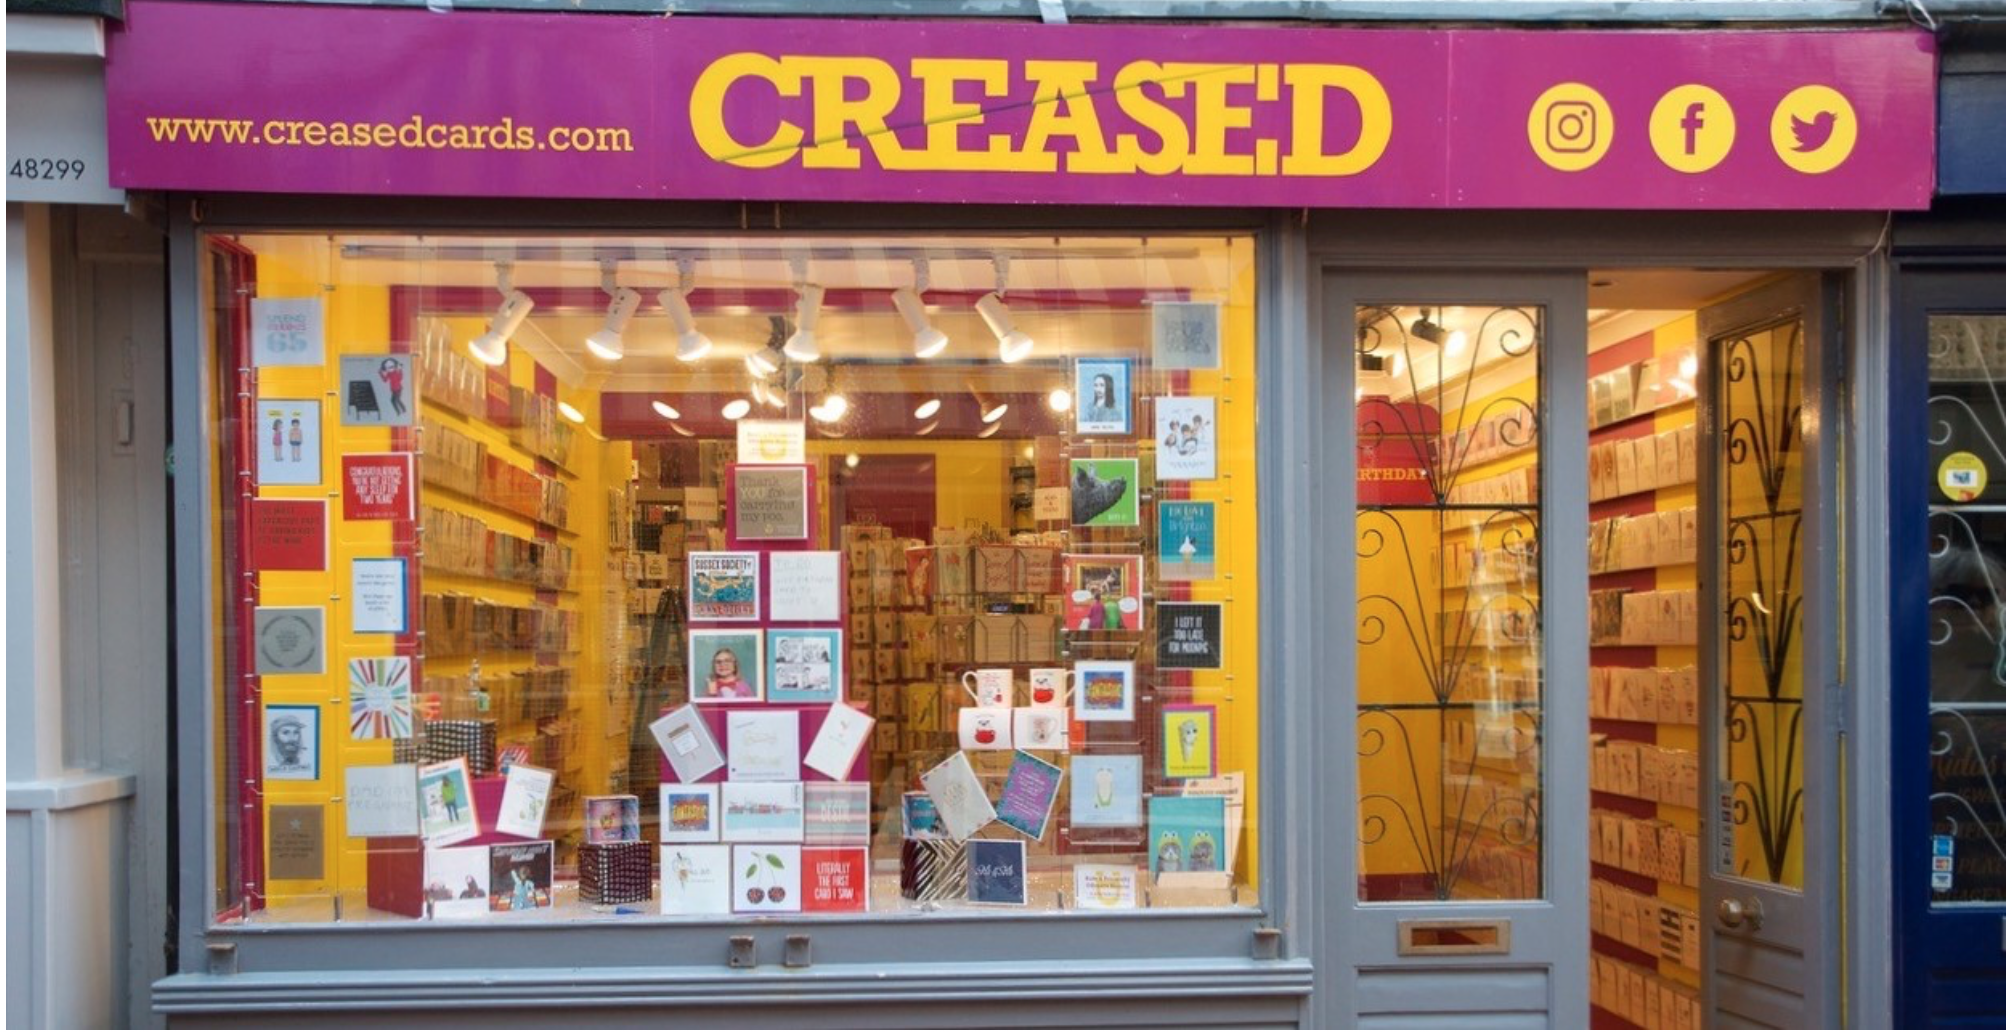 Above: Creased Cards in Brighton.